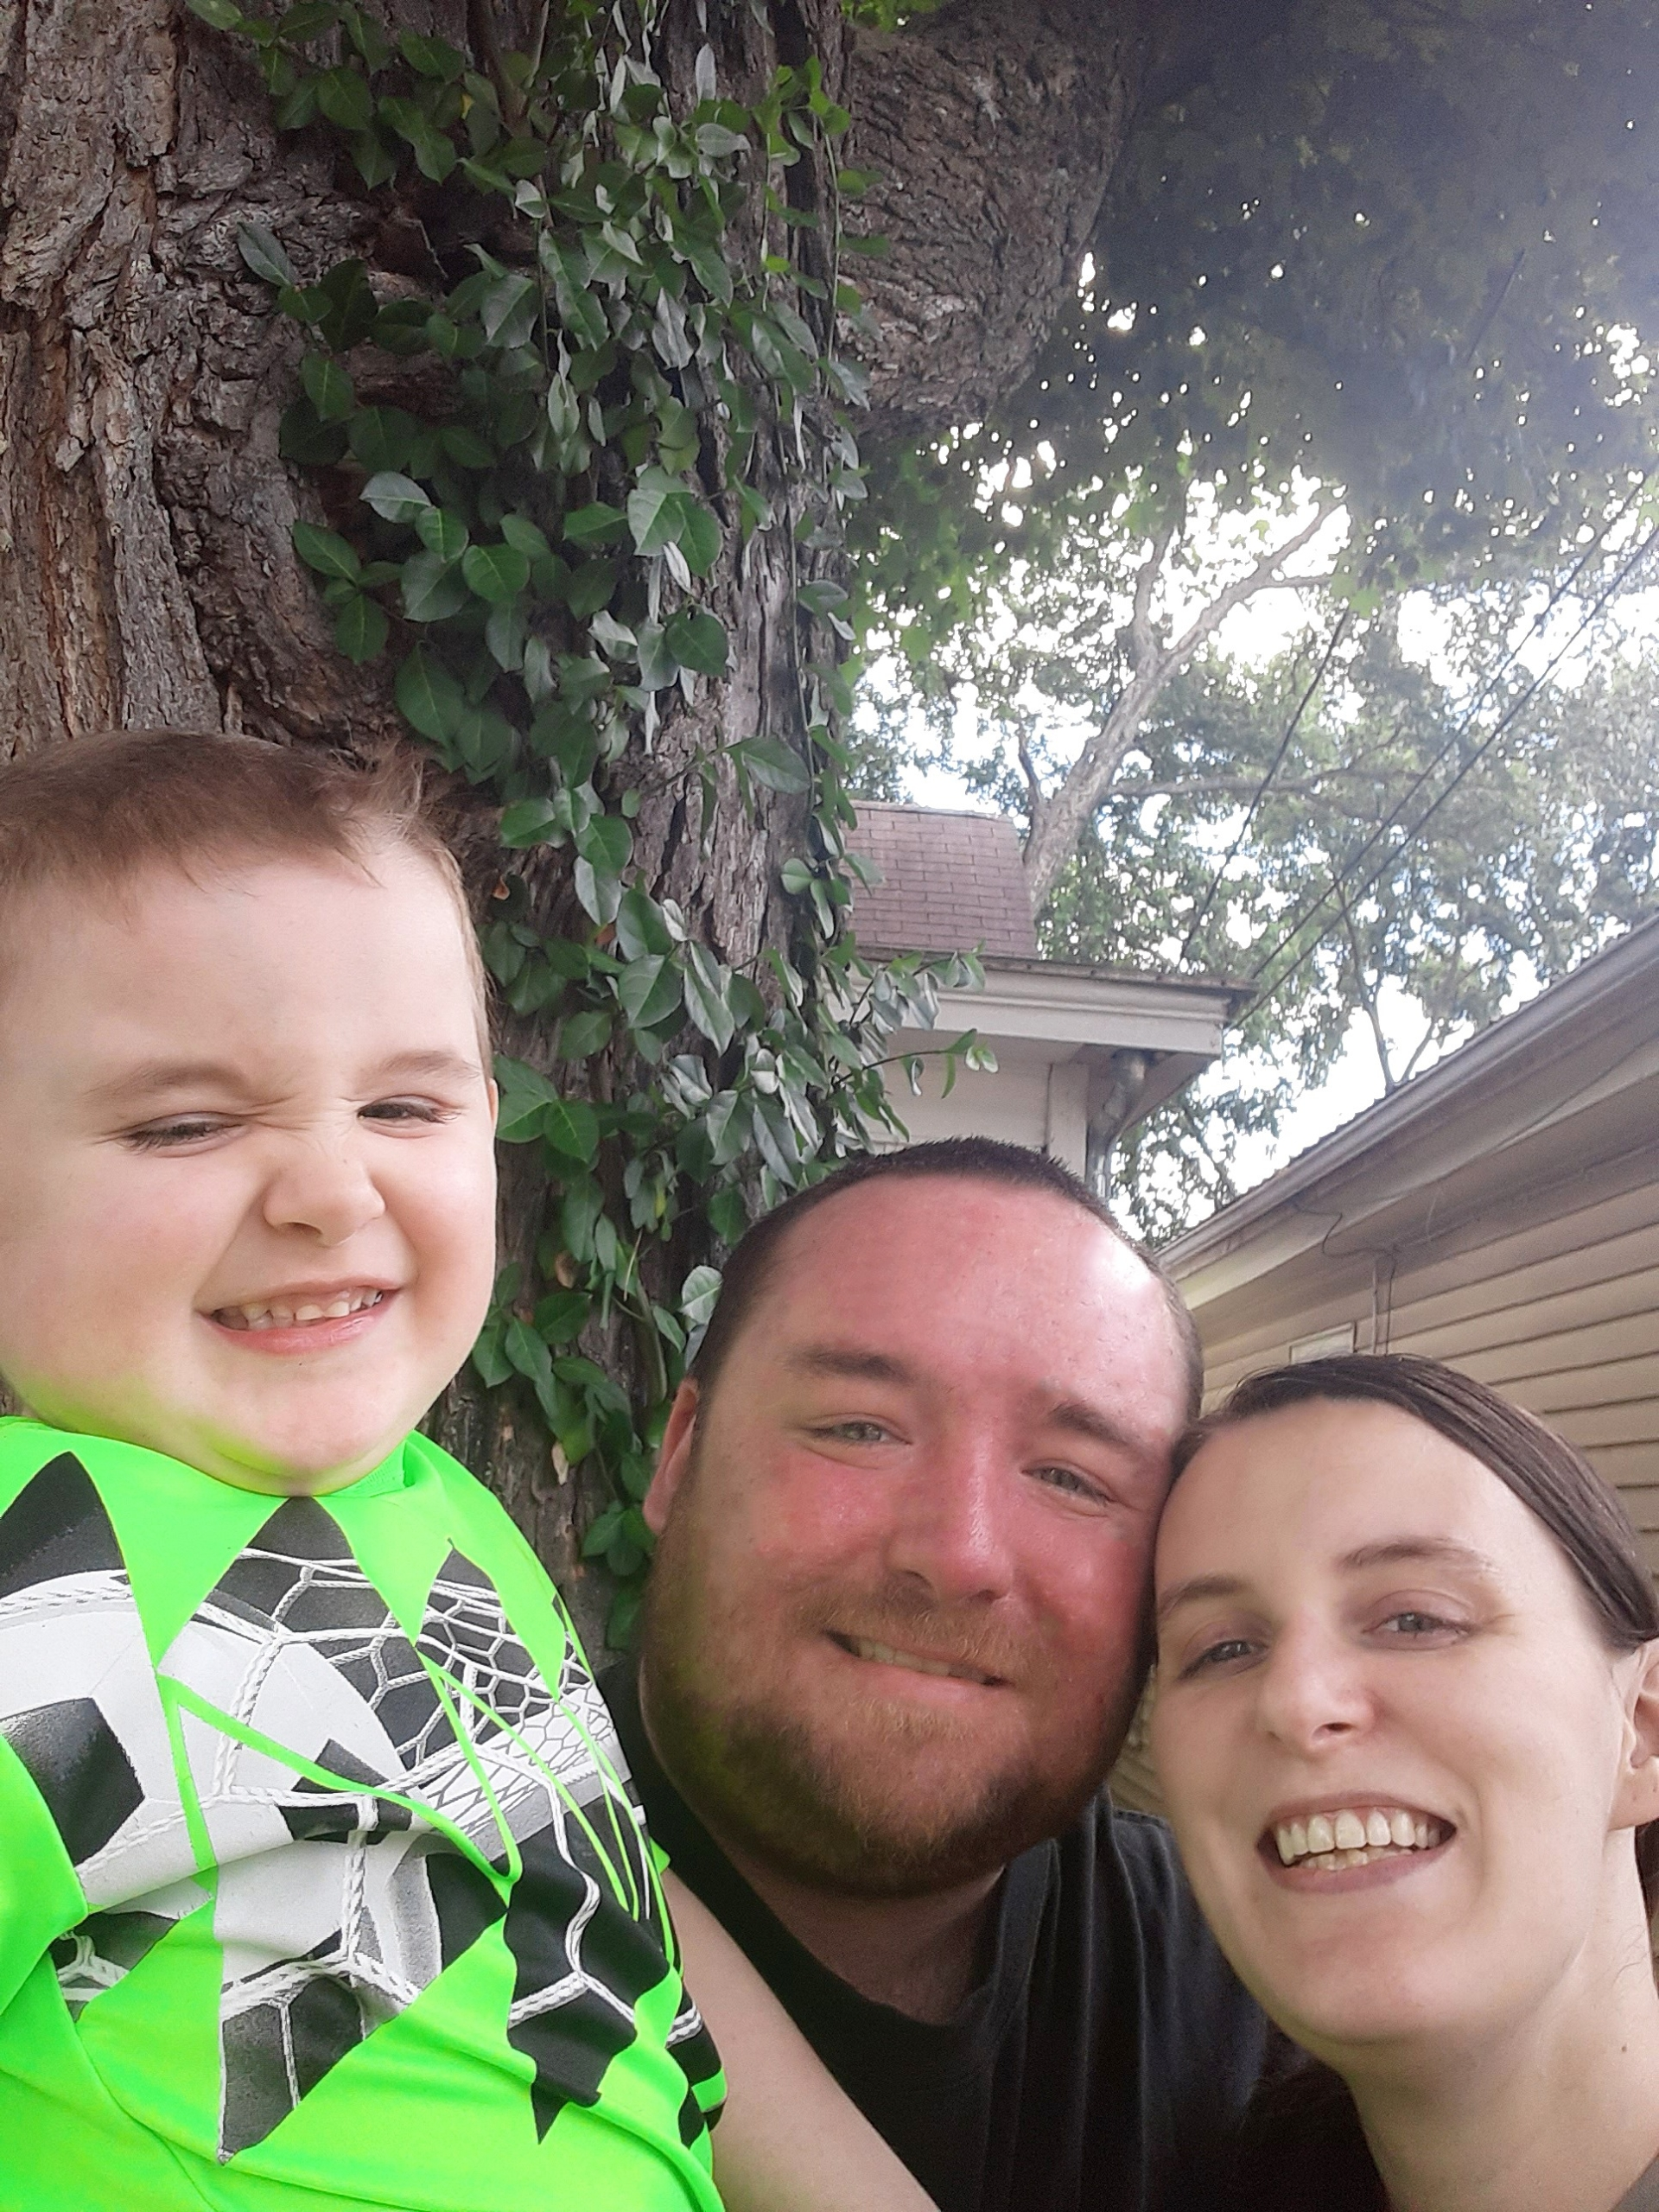 picture of Brittany and her husband and son in front of tree